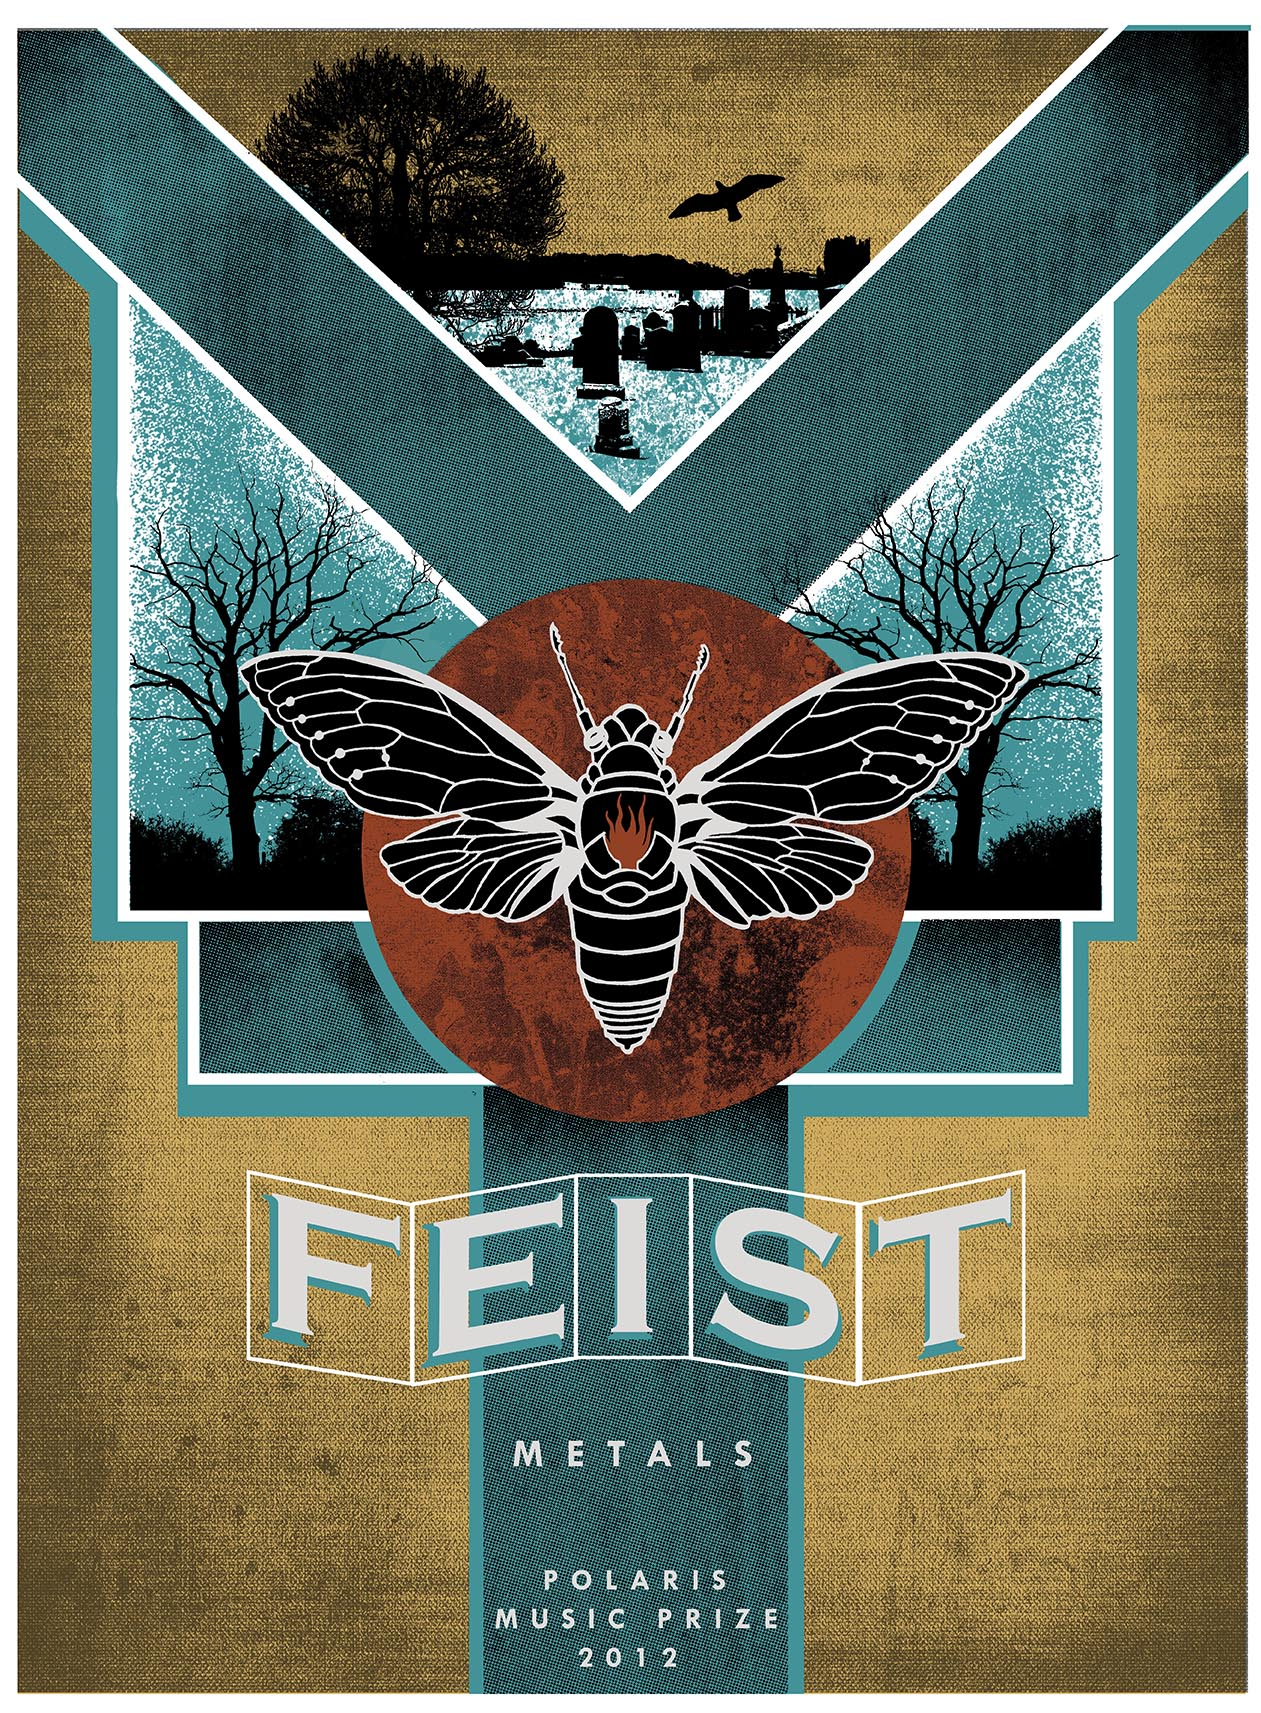 """An illustration of a large insect sits in the middle of the poster on top of a dark red circle. Beneath that are two overlapping squares with a blue background feature black trees. A large Y shape in blue span the height and width of the entire poster. The empty space on the poster is coloured a dark yellow. The word """"Feist"""" is in the bottom middle of the poster, above the word """"Metals""""."""